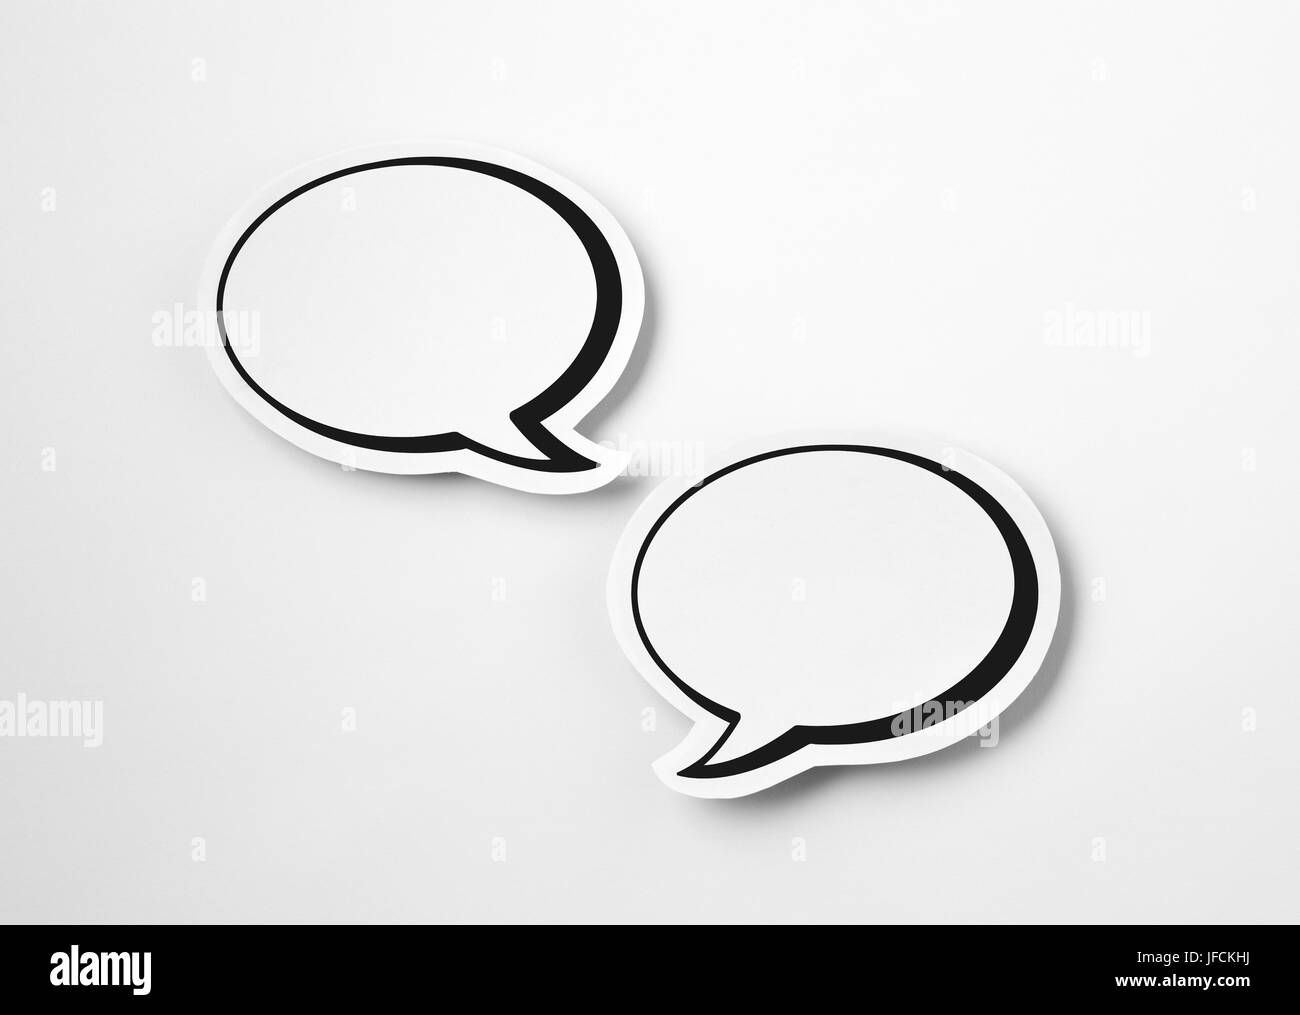 2 blank speech bubbles on white paper background. Chat bubble cut from cardboard. Simple and effective design. Discussion, - Stock Image